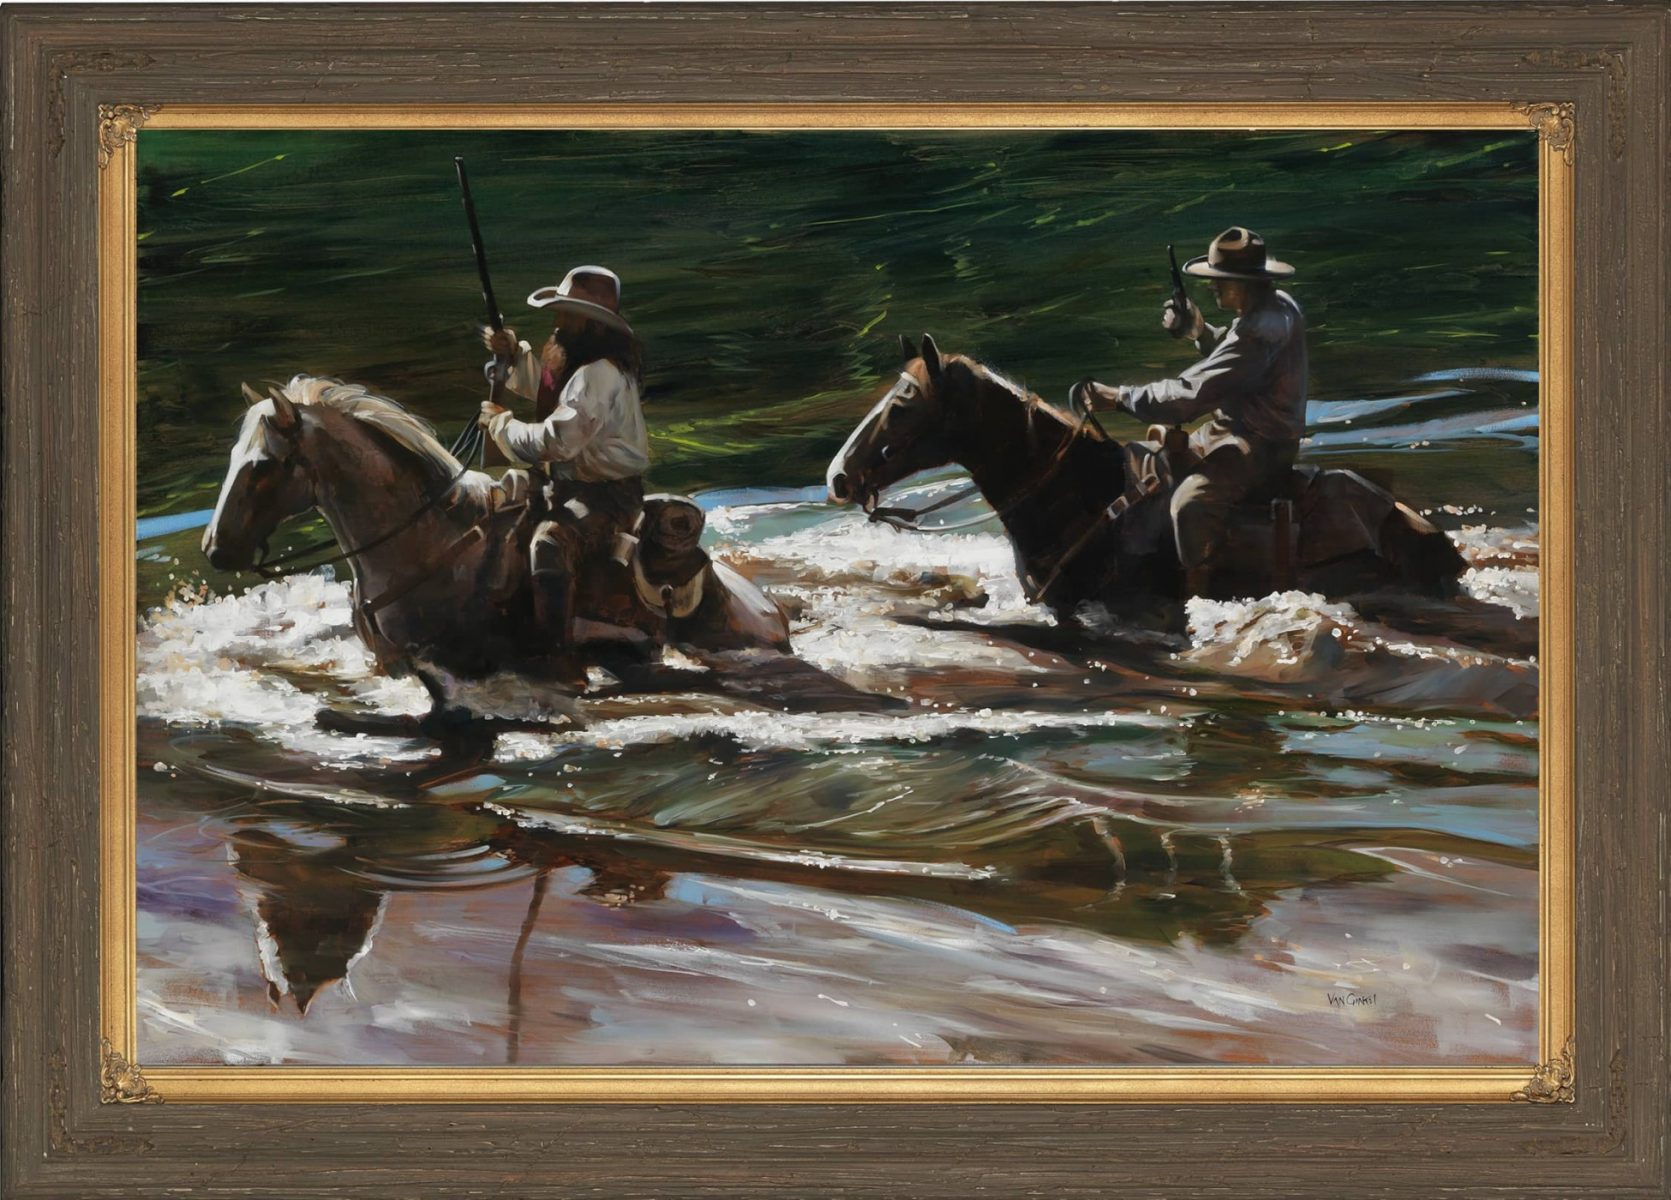 Hunting for Bounty painting by Paul Van Ginkel